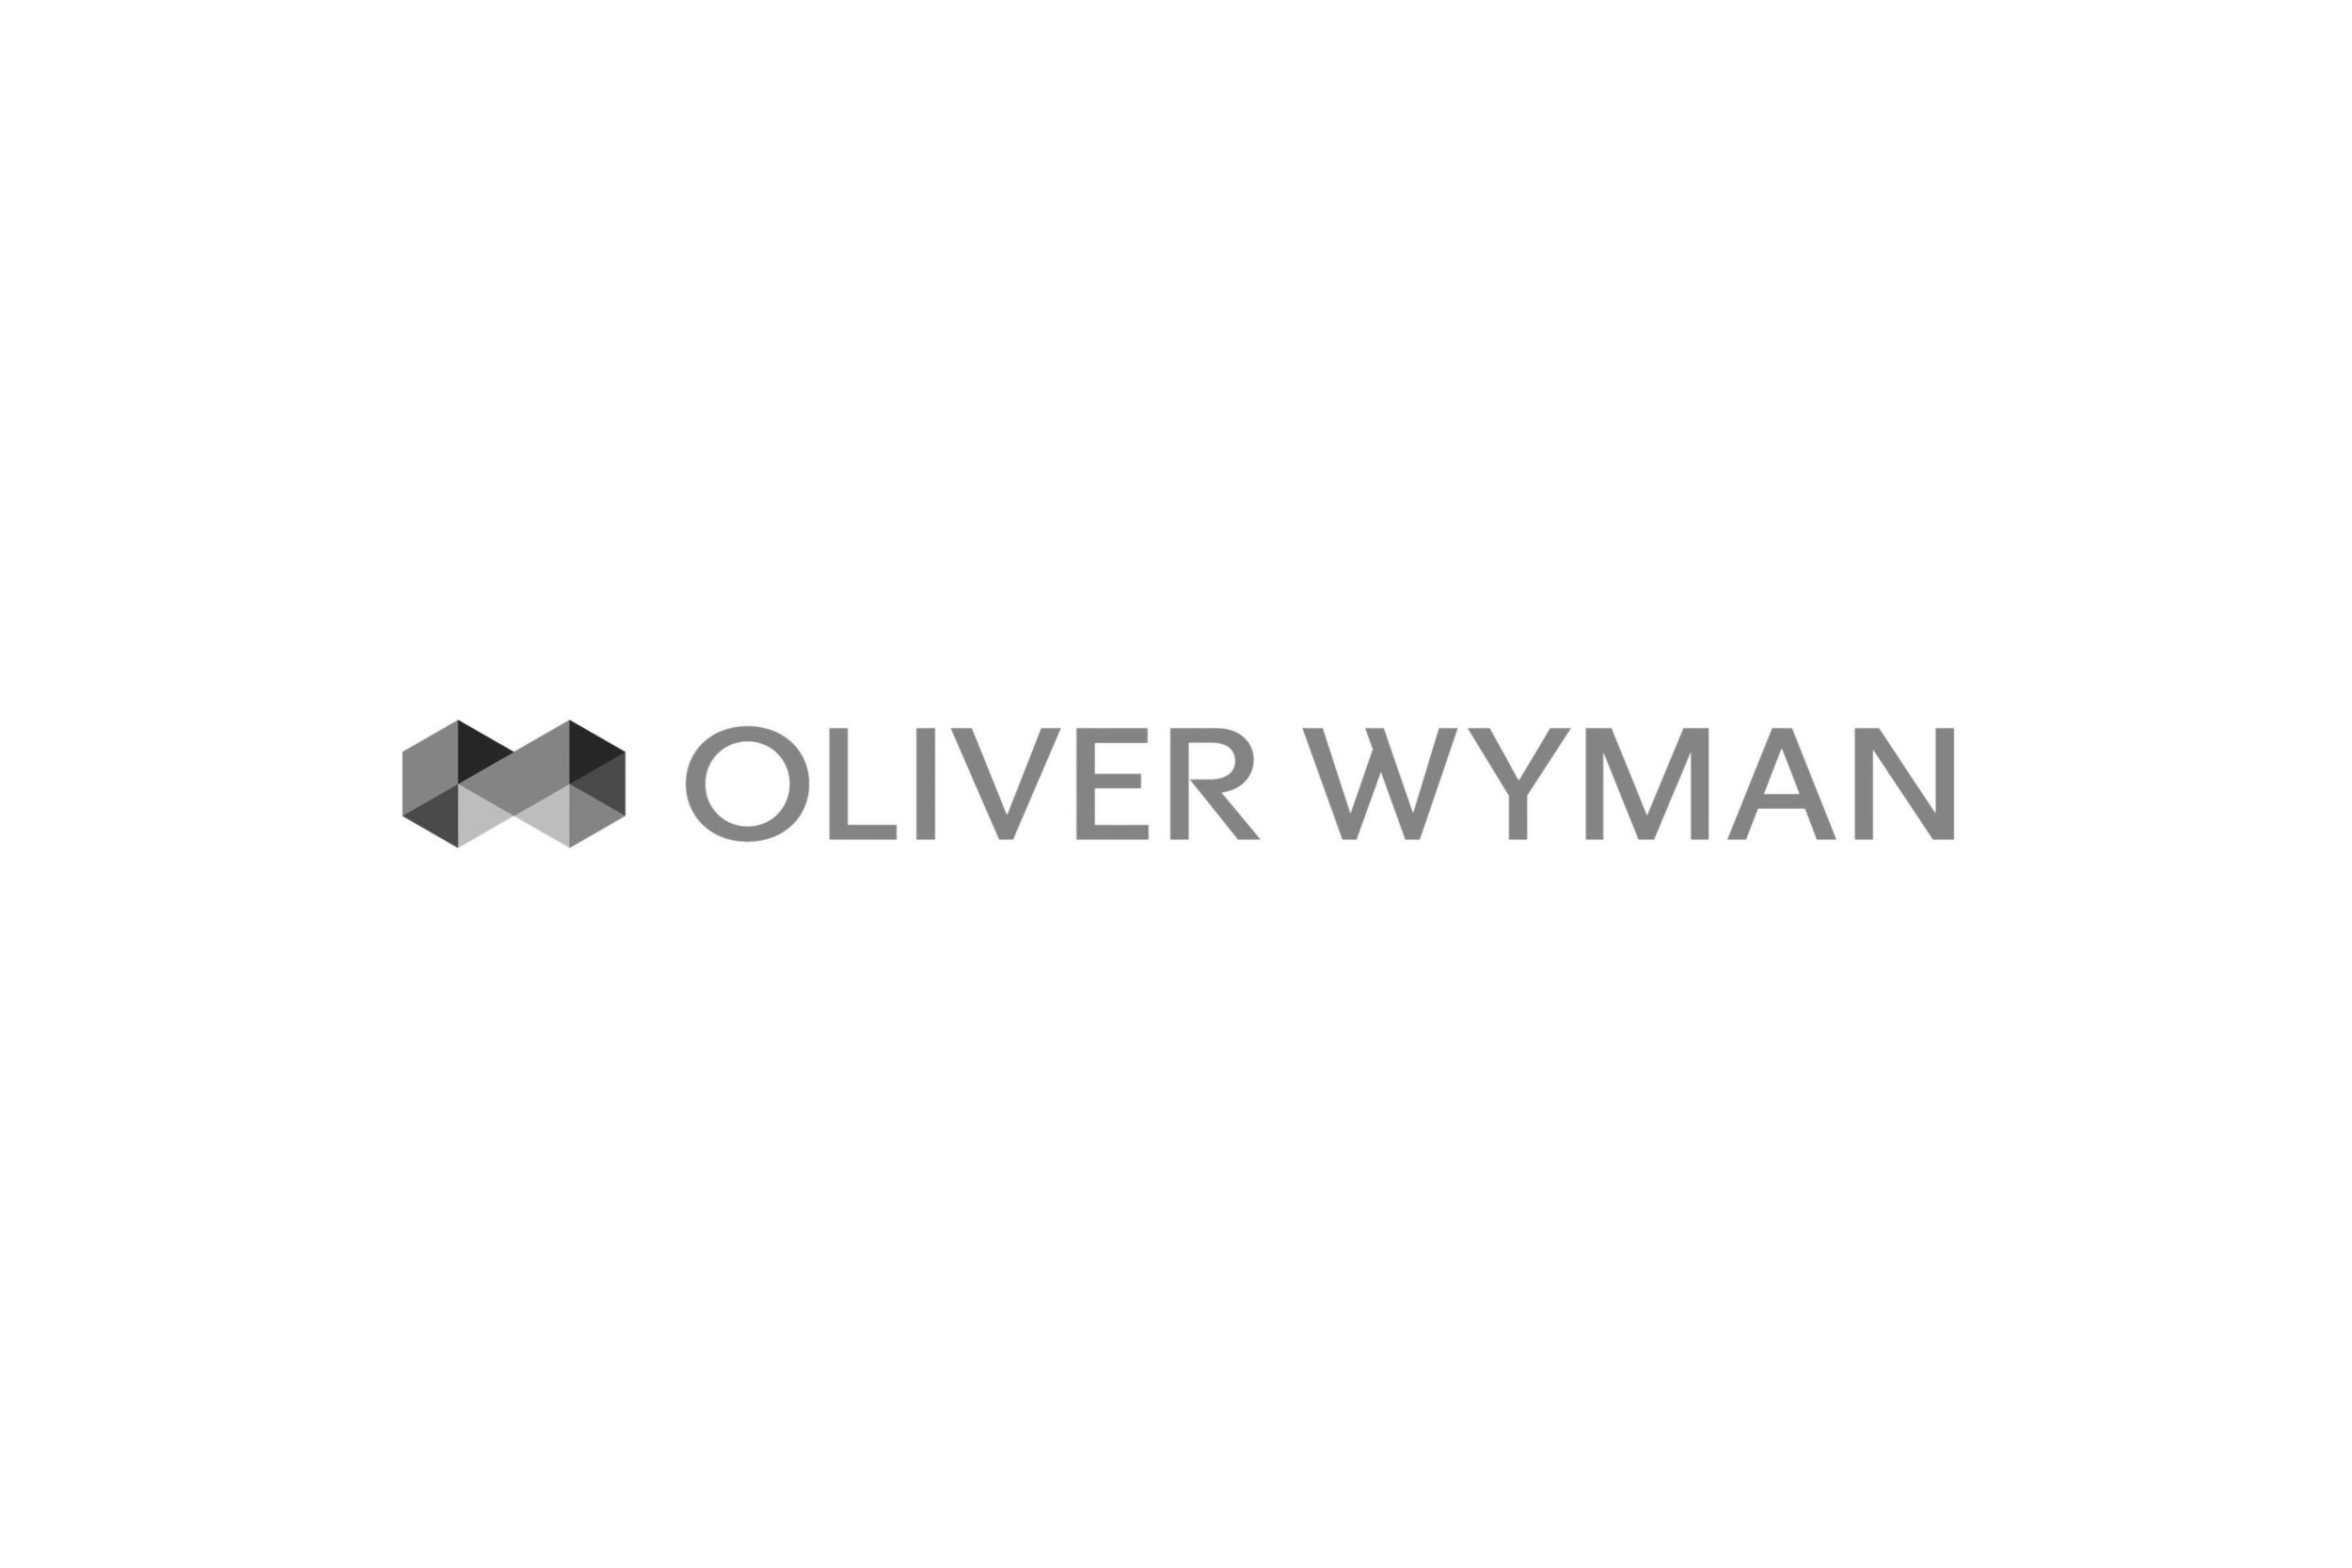 Untitled1_0000s_0021_JEB-ClientLogos_0001s_0021_Oliver-Wyman.png.jpg.jpg